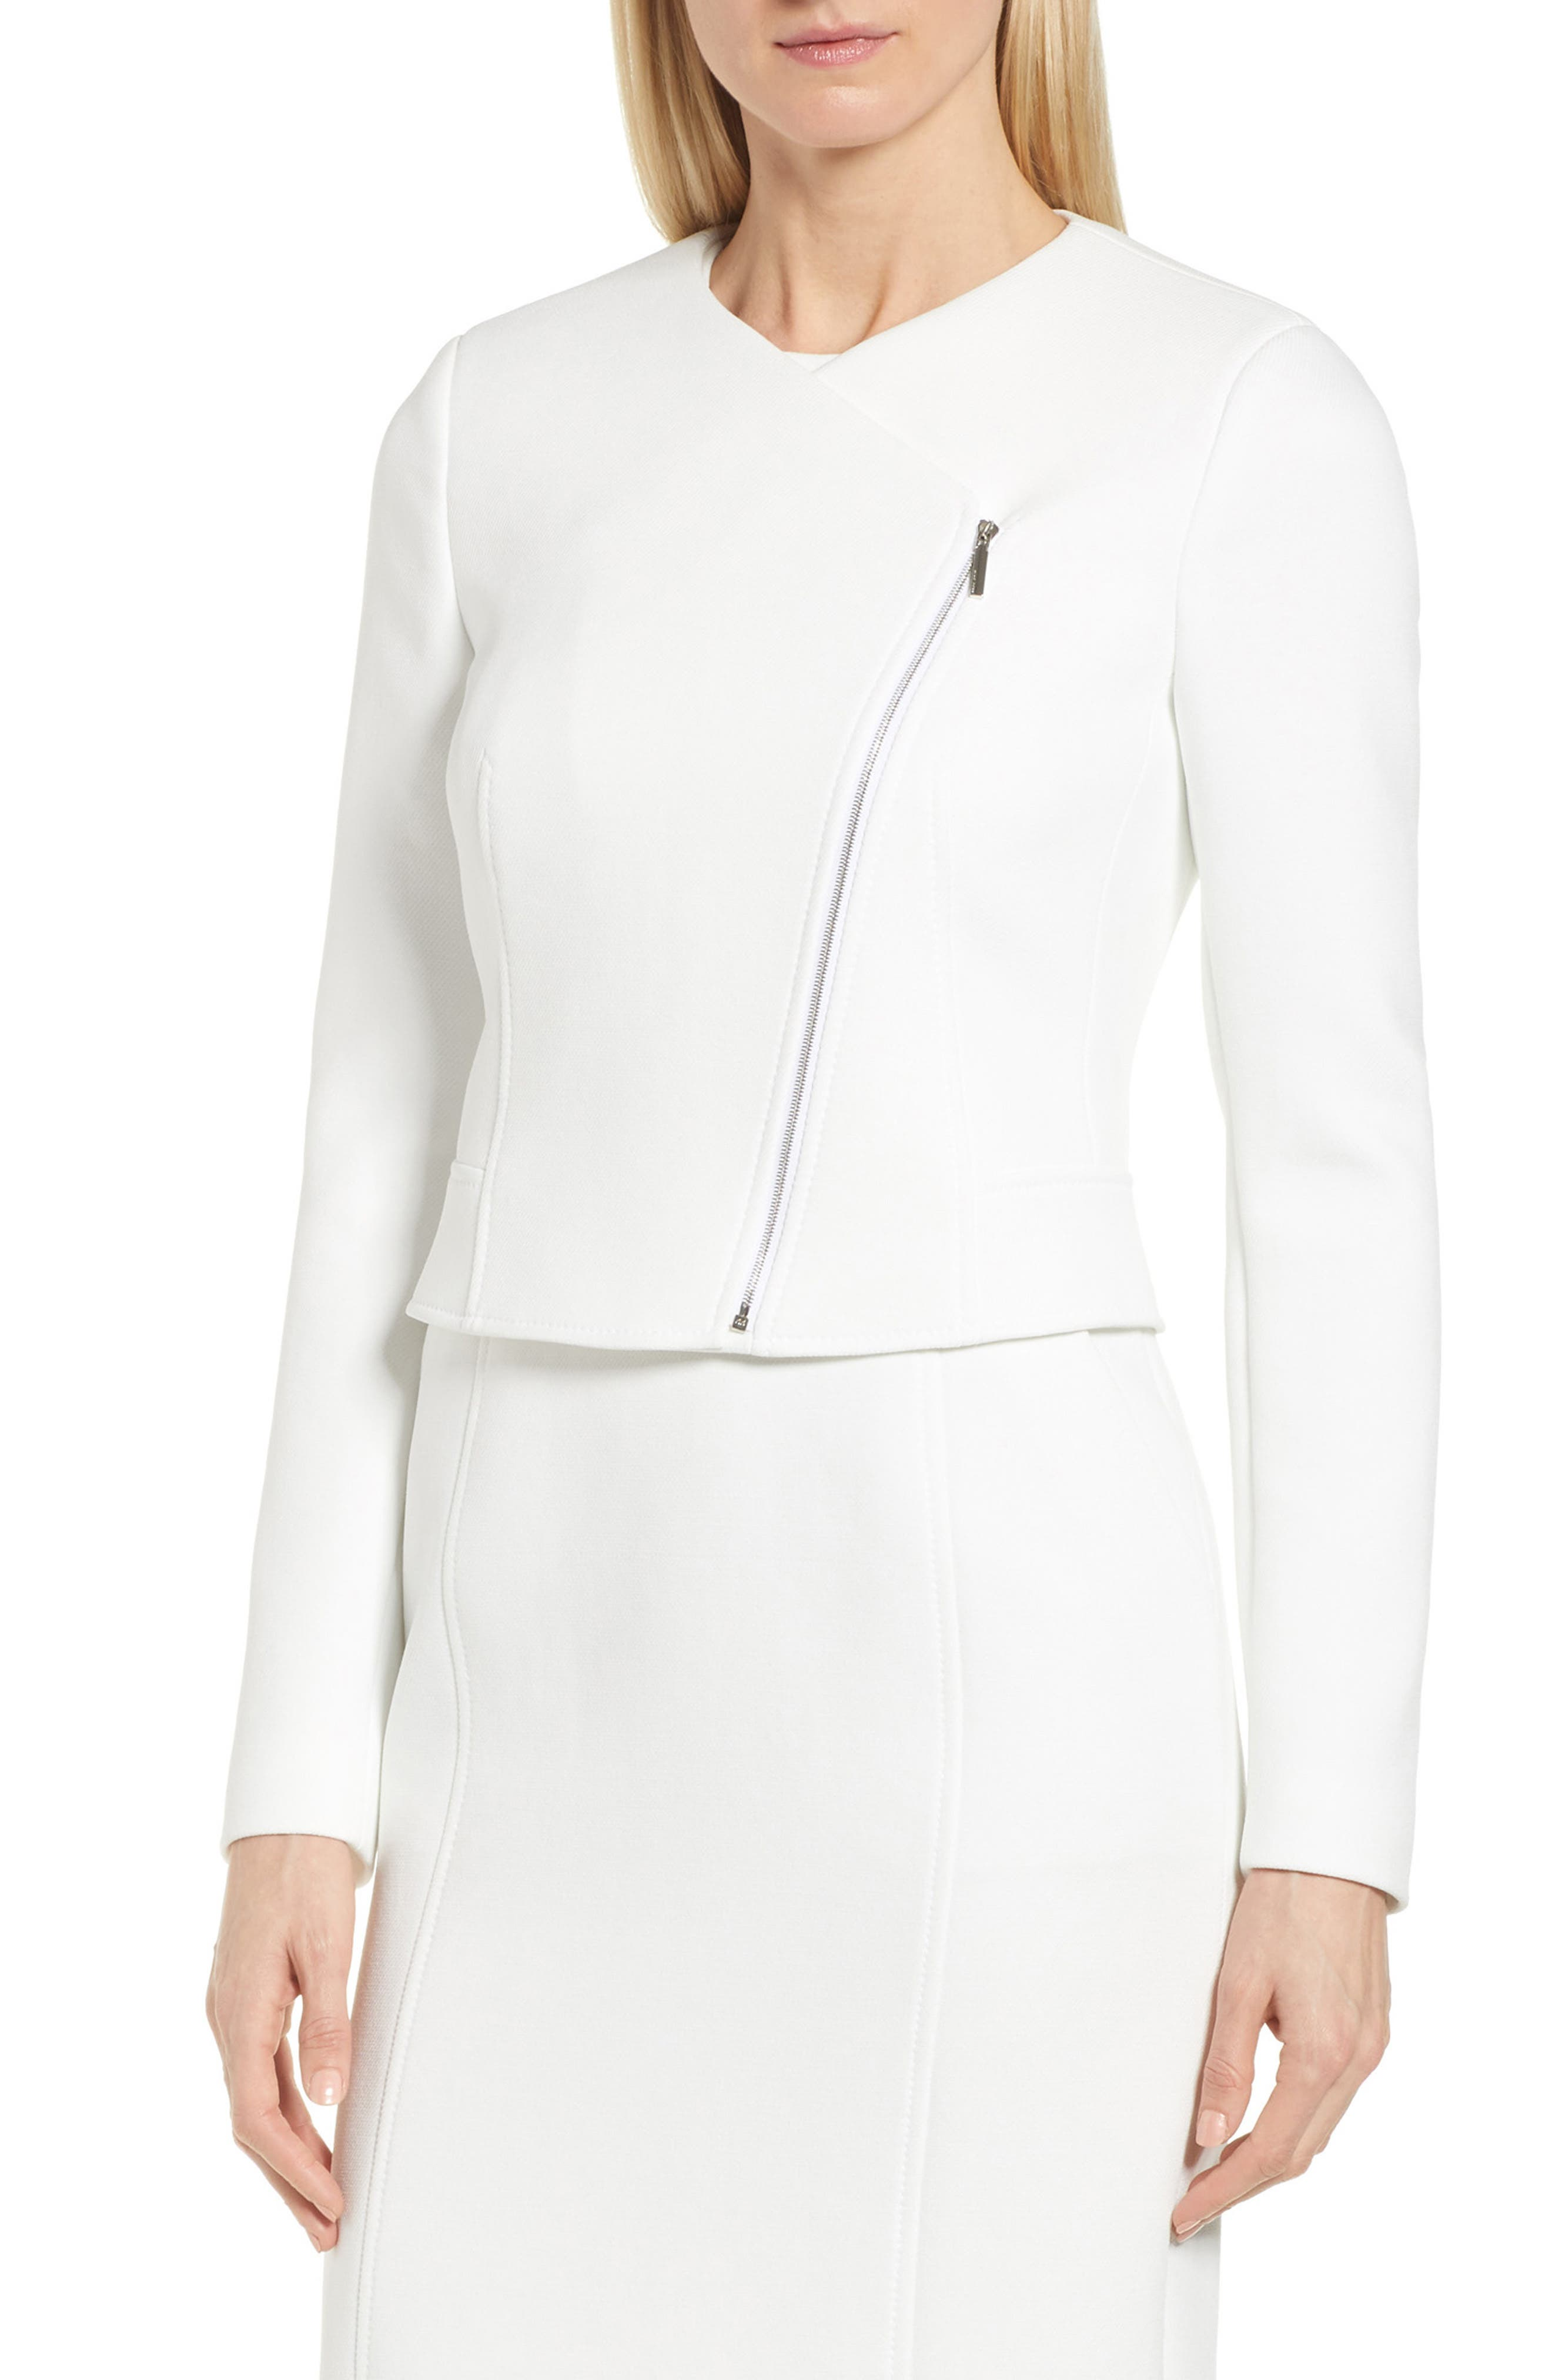 Juleama Compact Twill Asymmetrical Zip Jacket,                         Main,                         color,